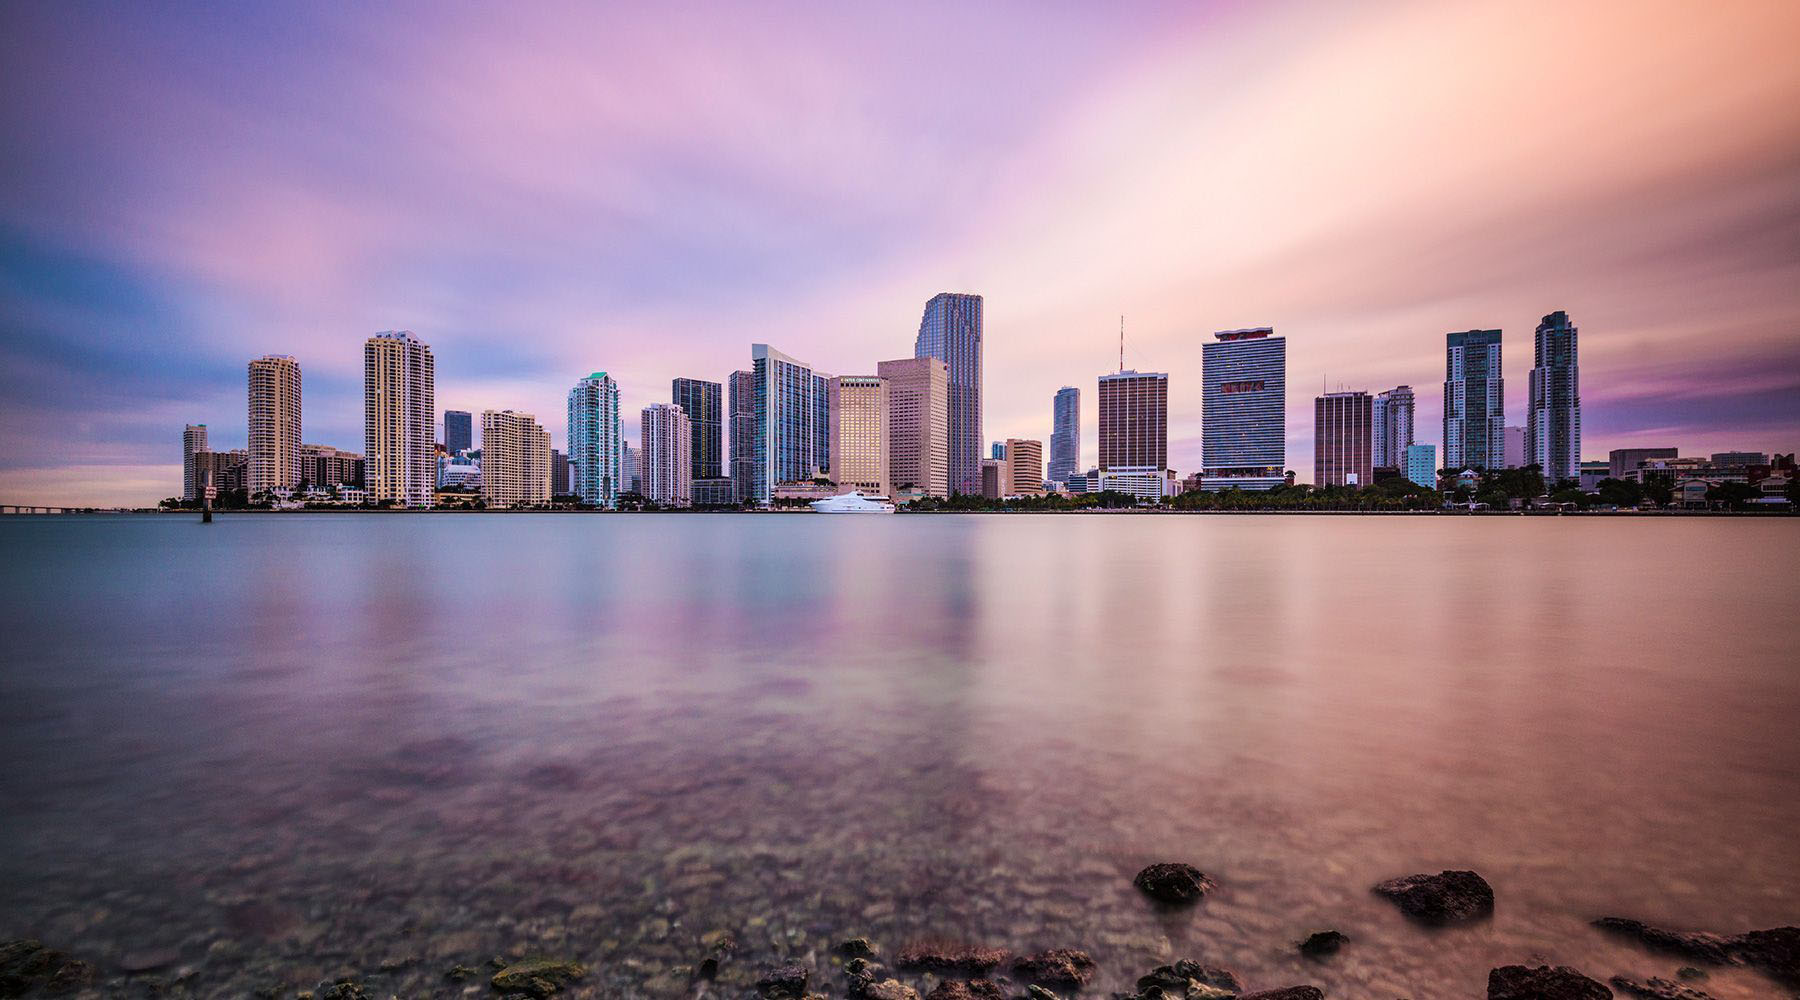 high rise buildings in miami florida beside body of water